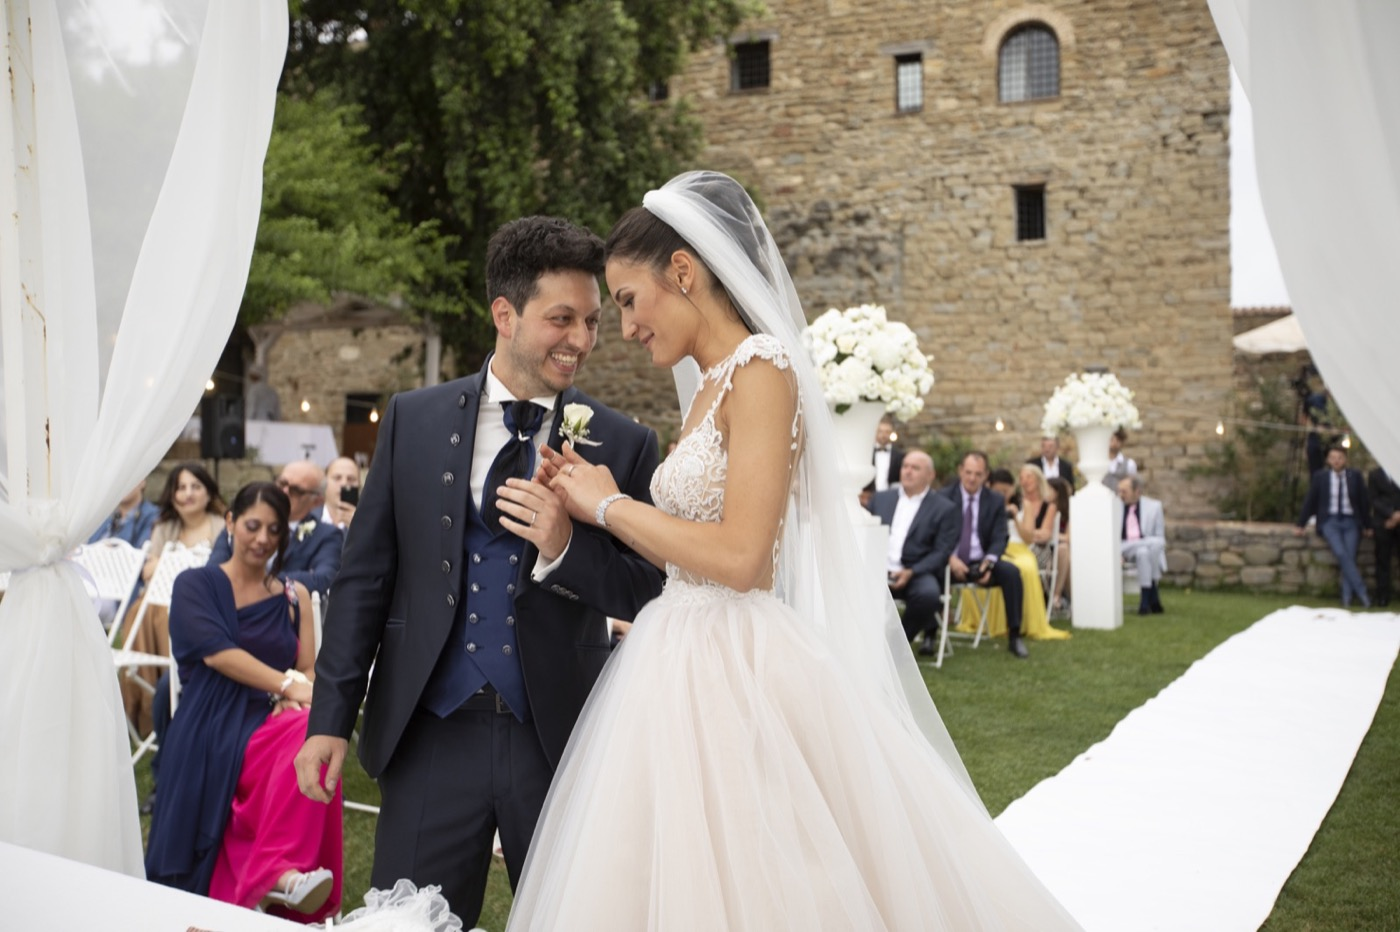 Claudio-Coppola-wedding-photographer-castello-rosciano-torgiano-41